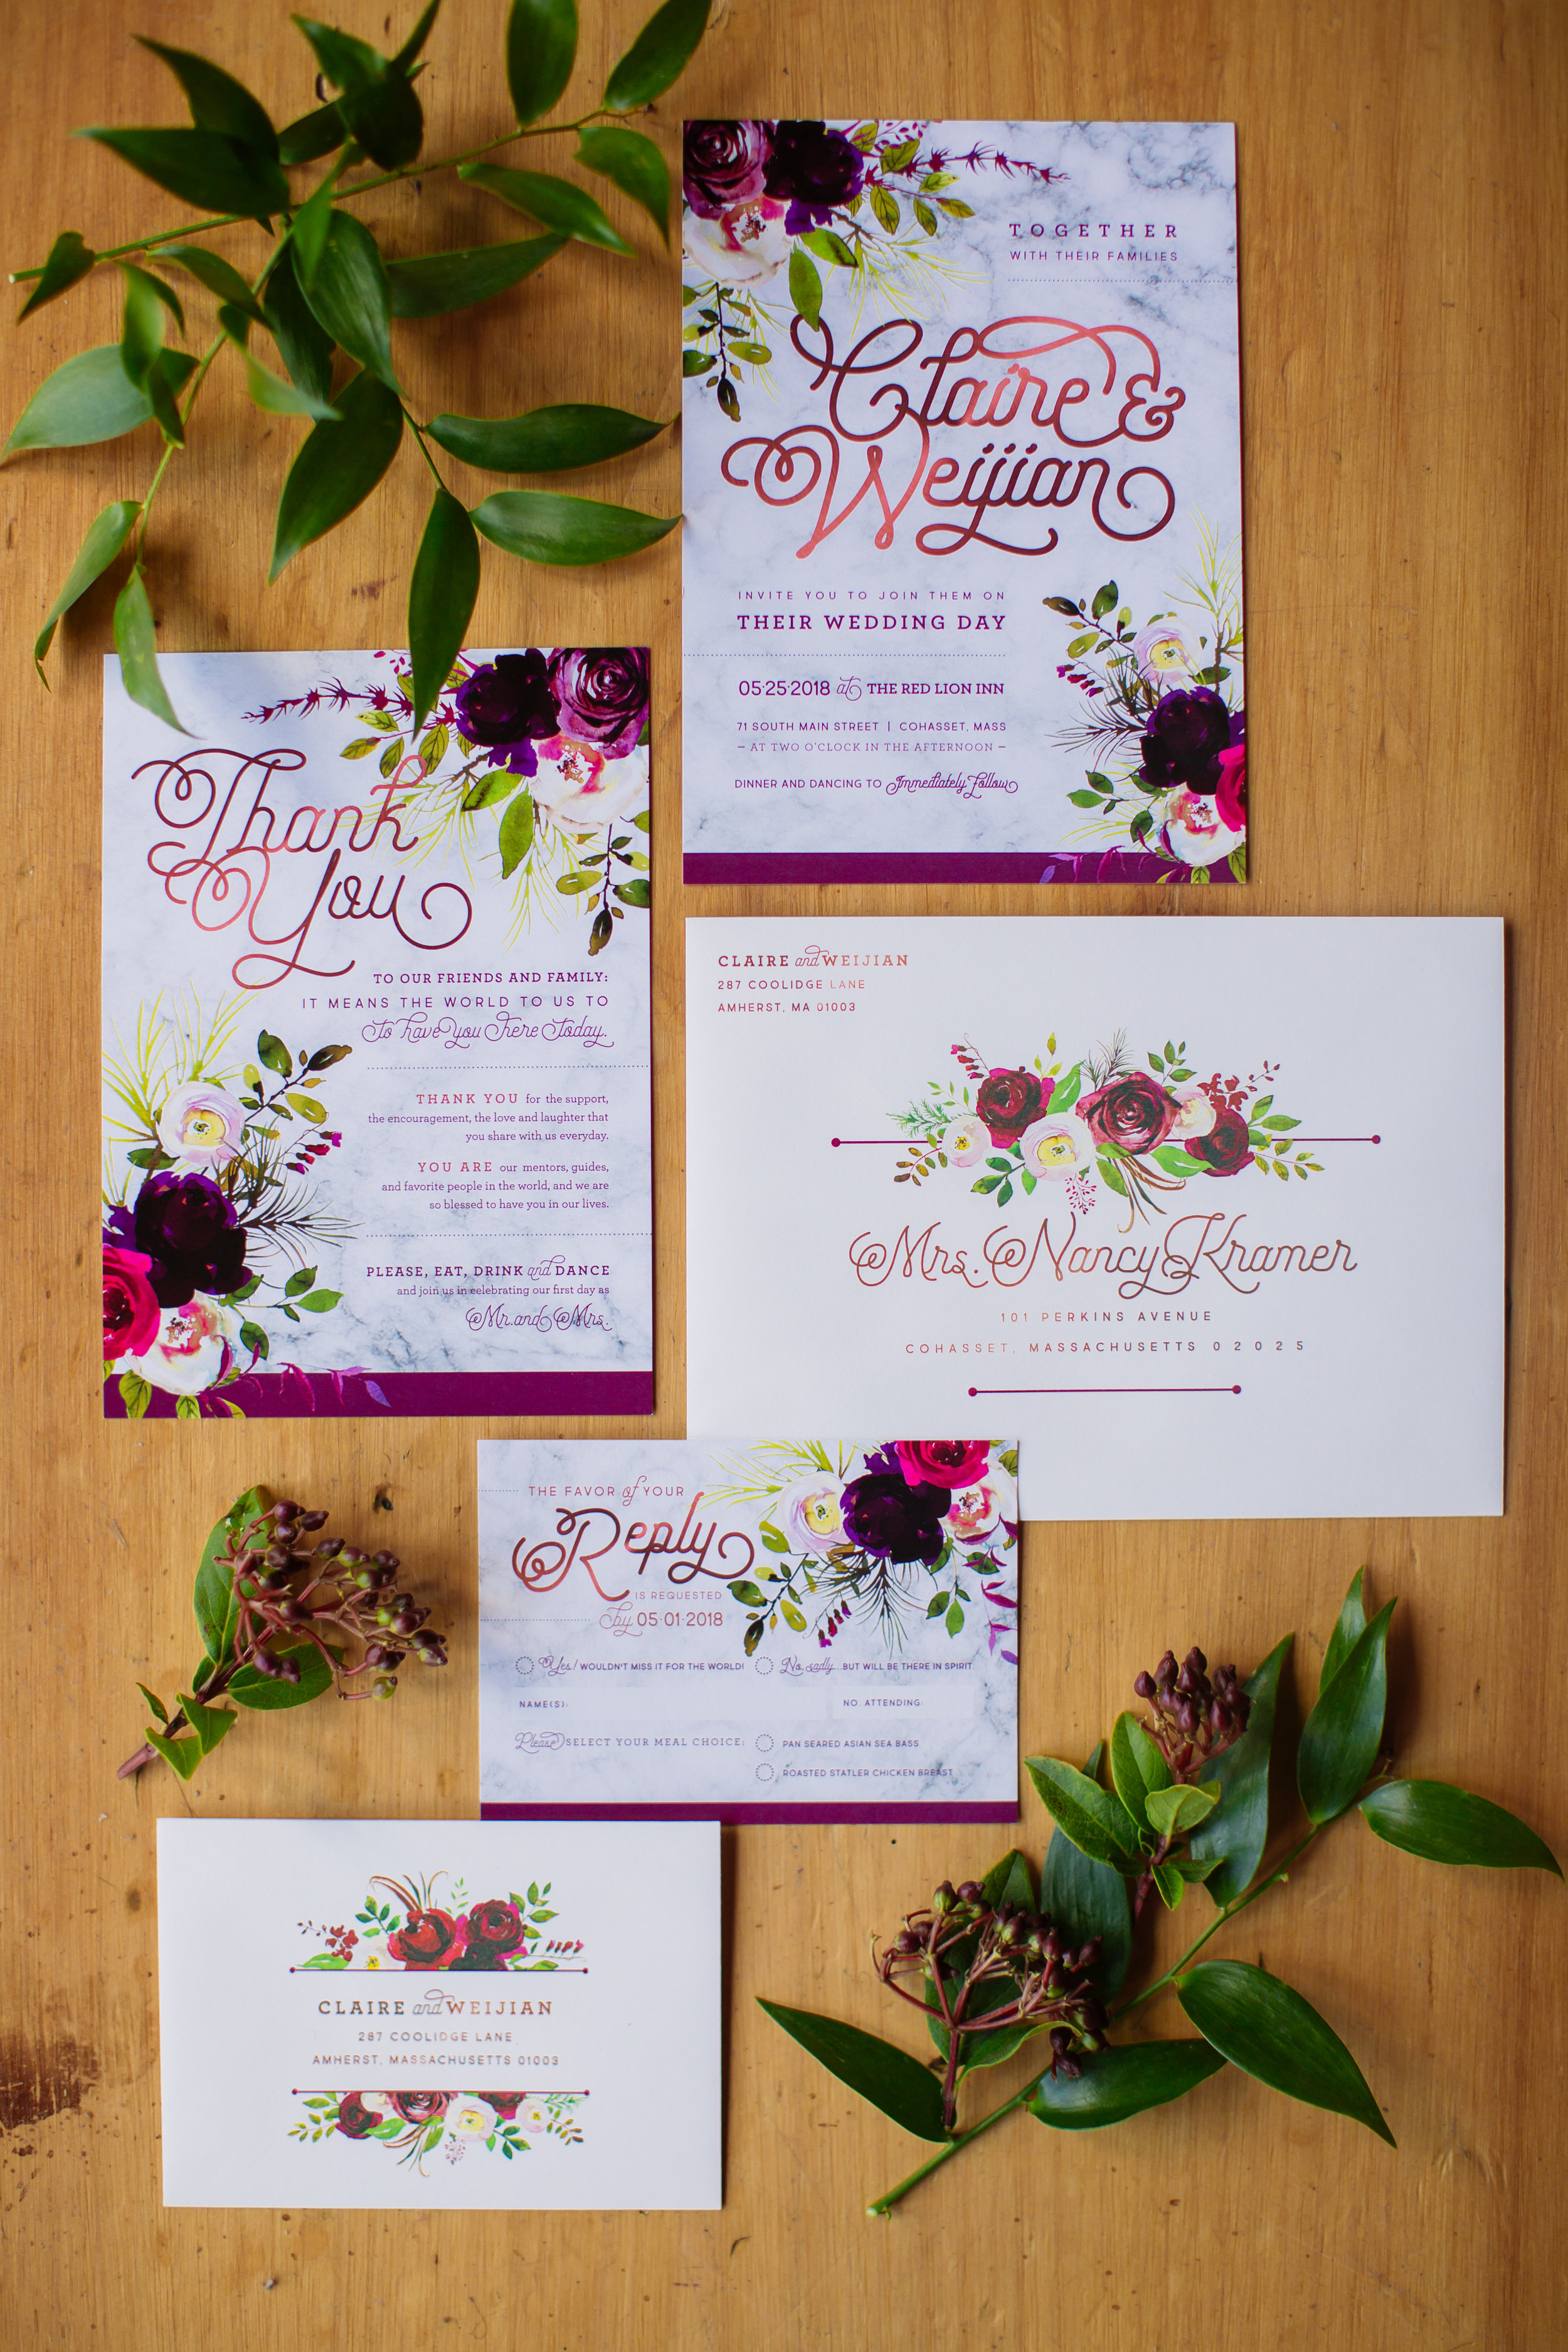 ABOUT - Jessica Hennessey Weddings is your one-stop wedding design, planning &coordination company based on the South Shore of Boston,serving brides & grooms in Cape Cod, Massachusetts and the New England area.Learn More